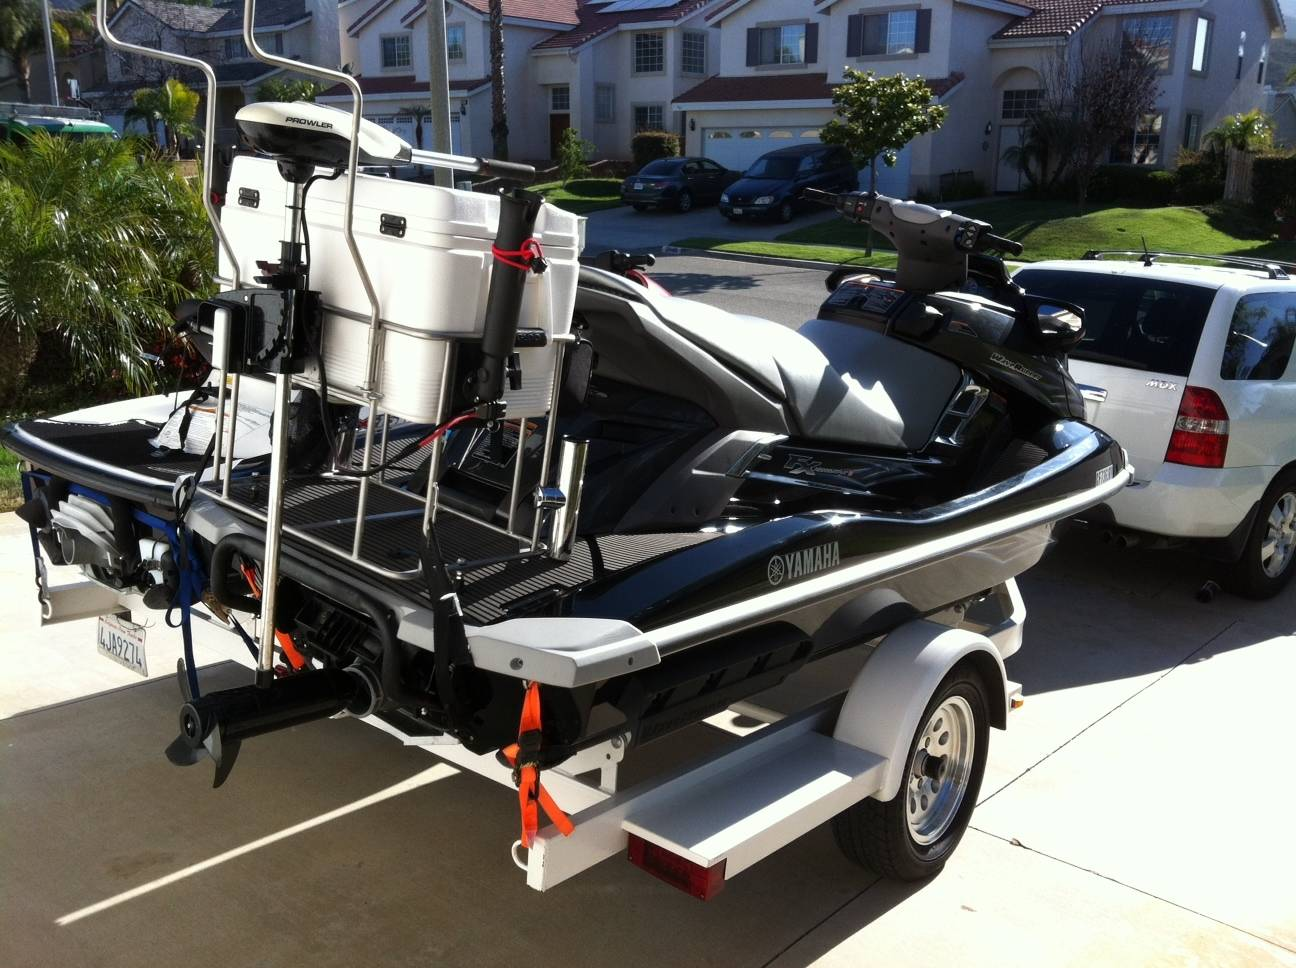 Jet ski fishing trip to la jolla bloodydecks for Best jet ski for fishing